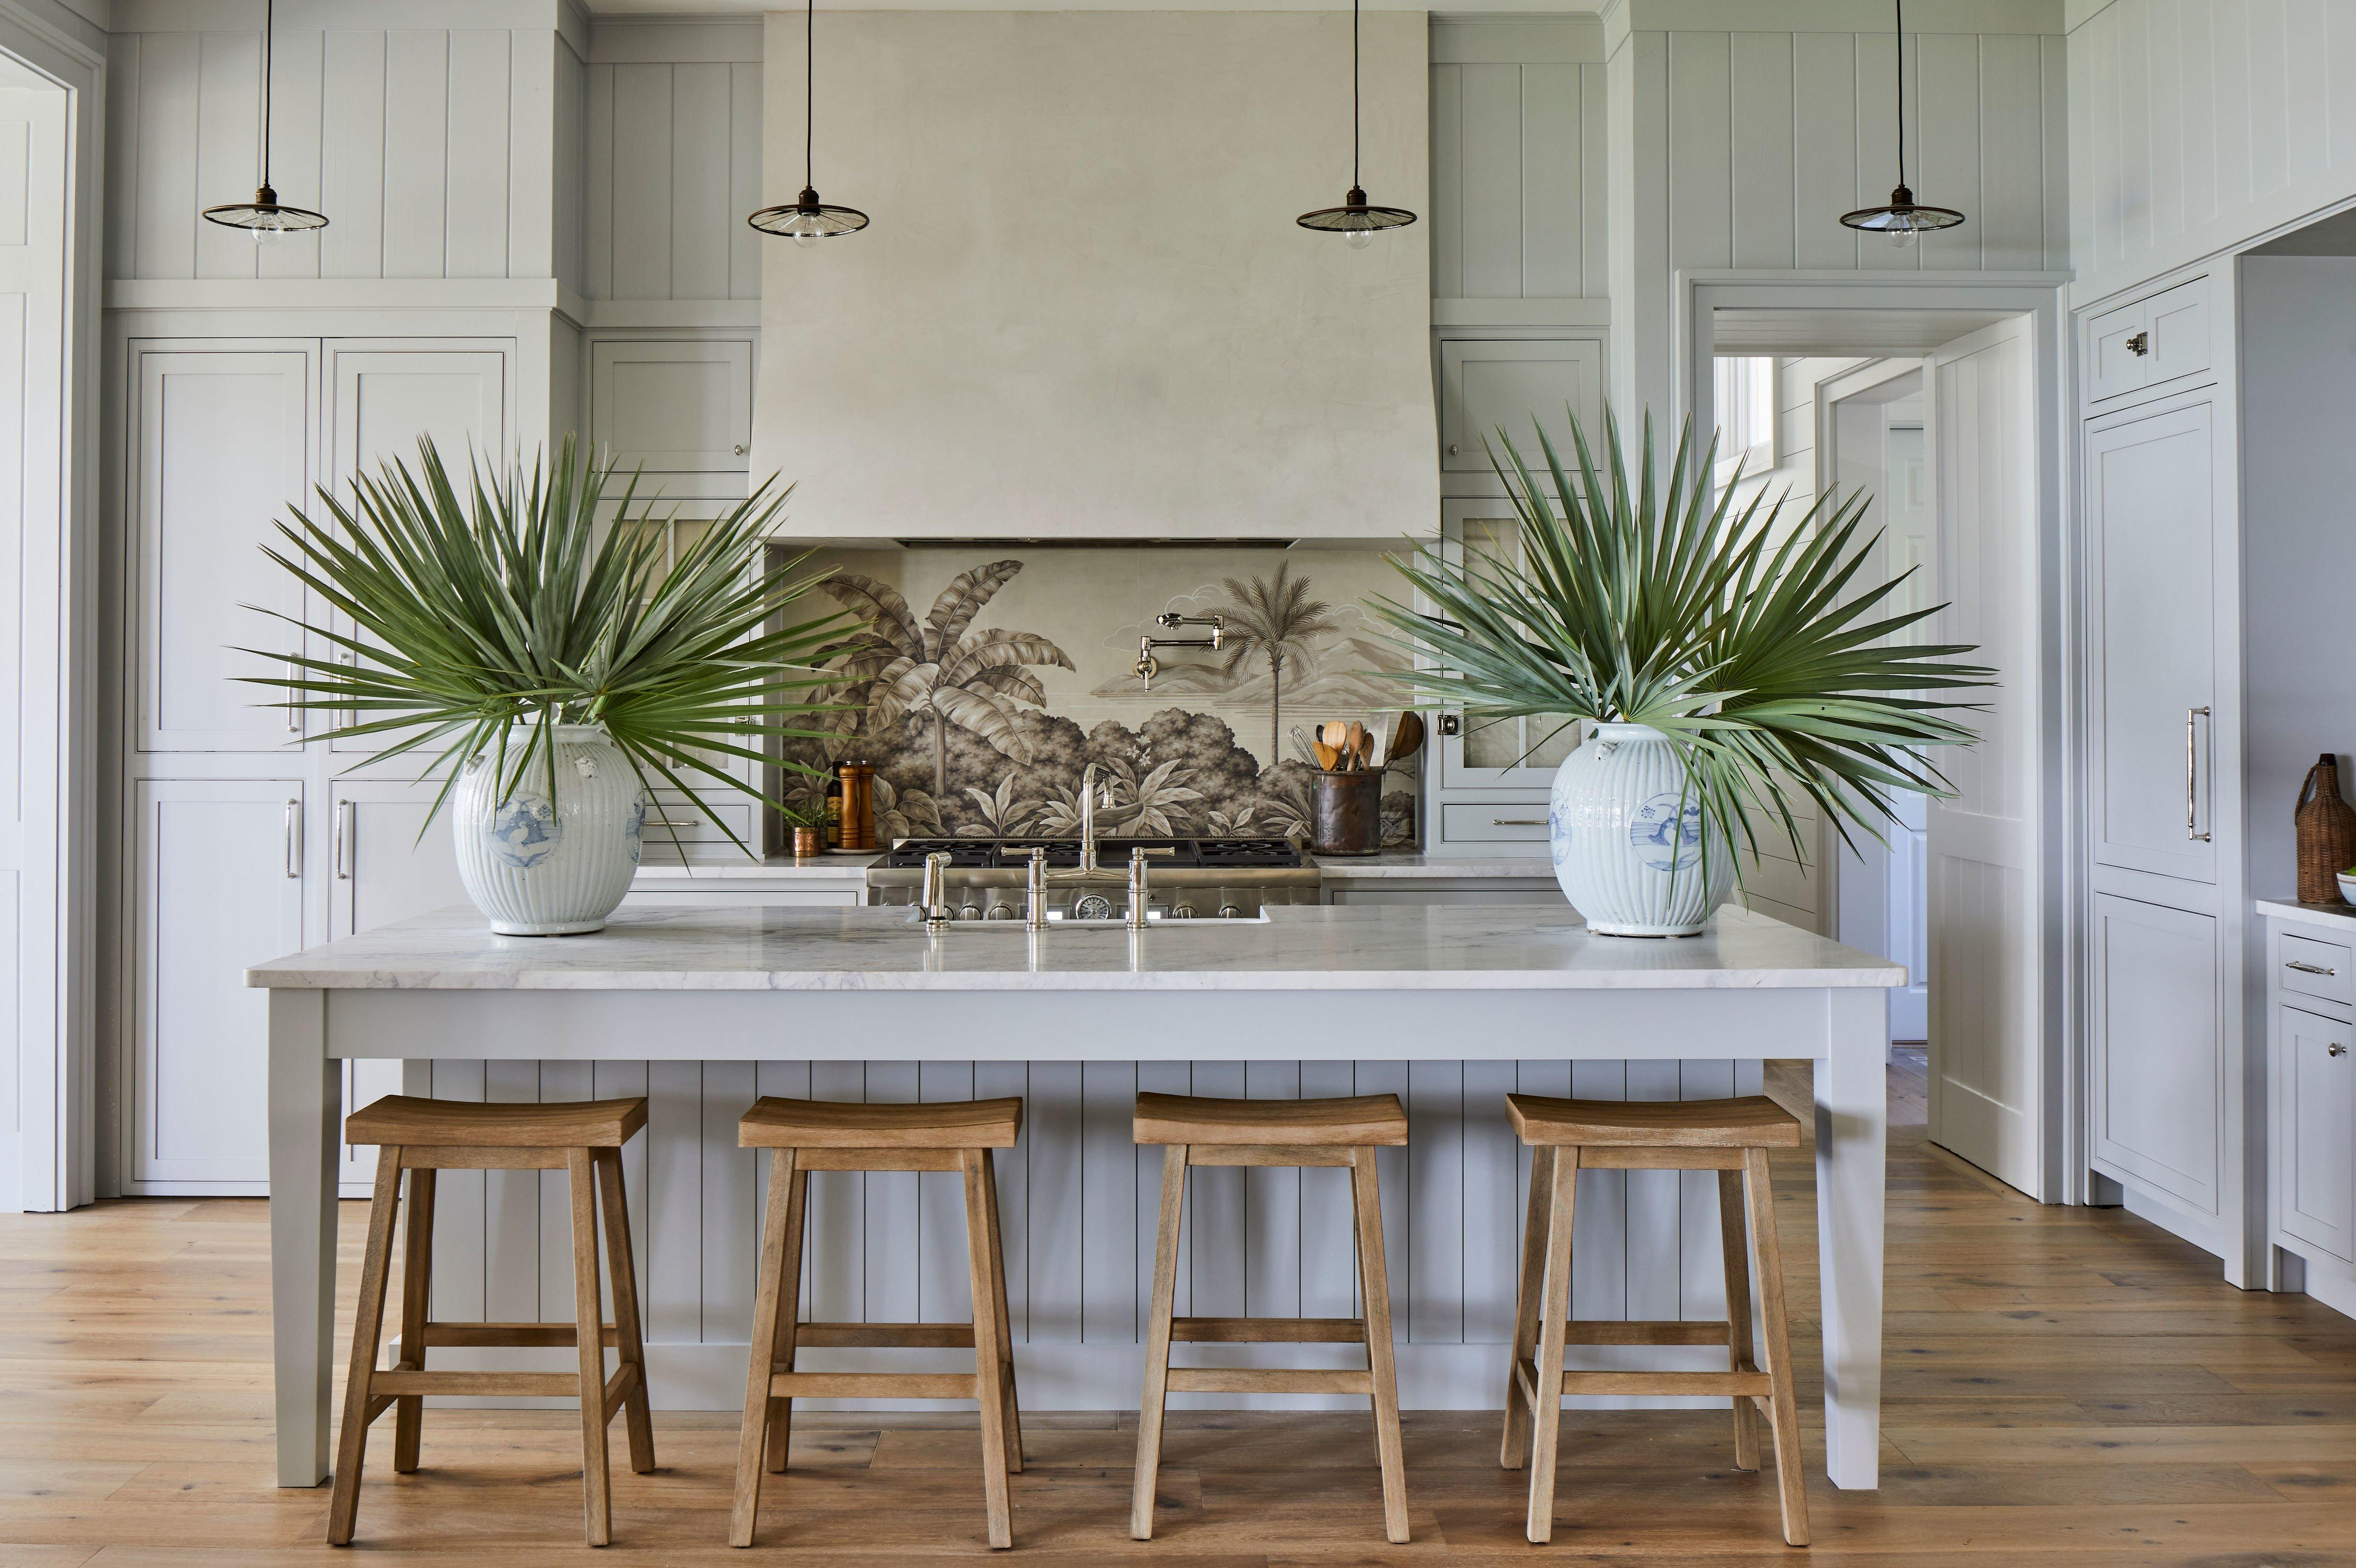 2020 Design Trends Home.8 Home Design Trends That We Re Looking Forward To In 2020